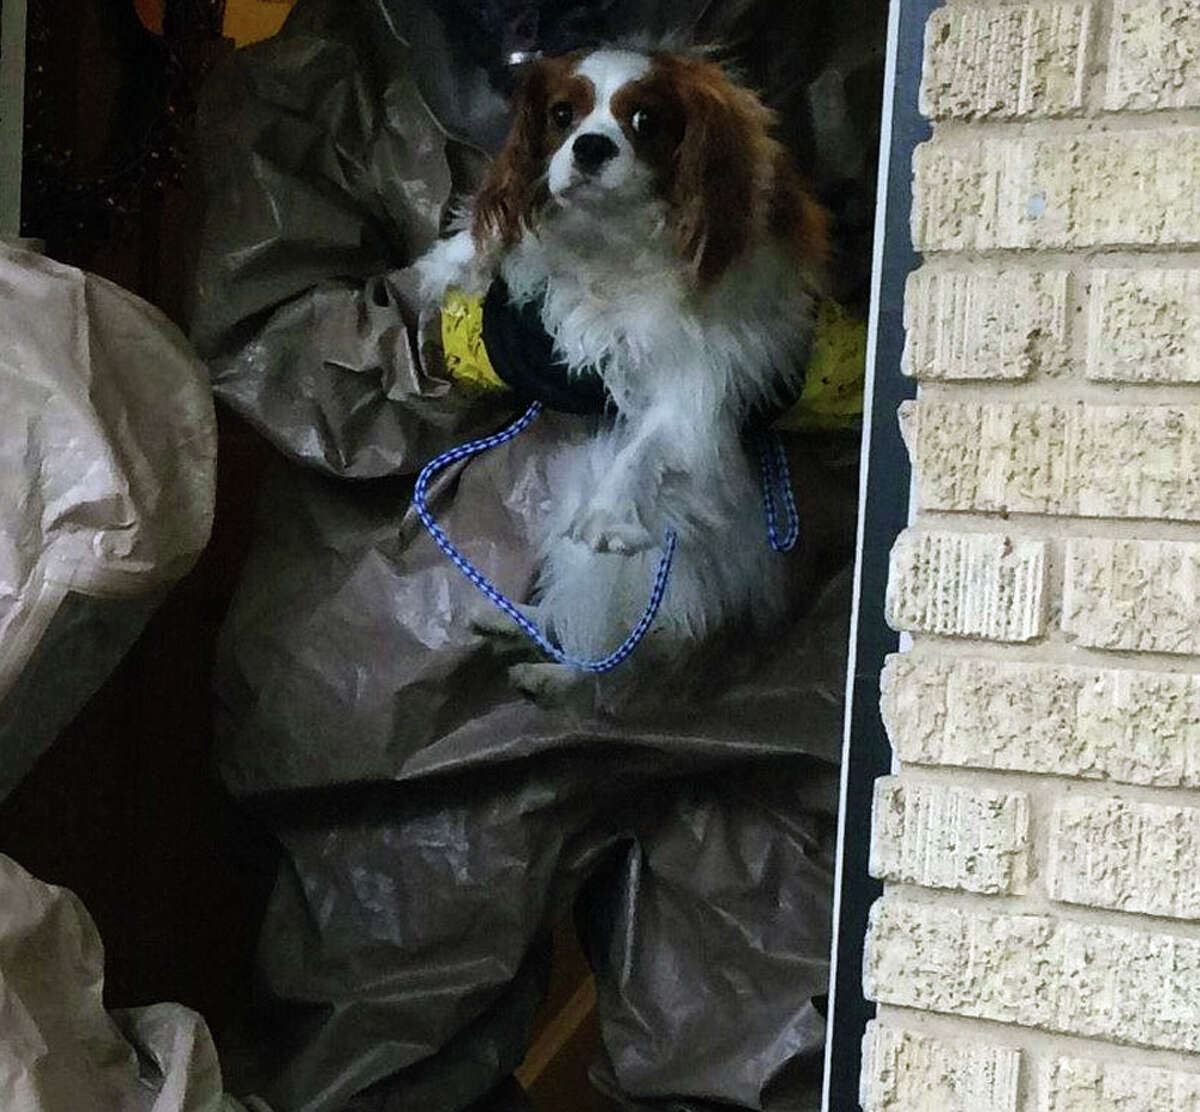 HAZMAT TEAM TAKES BENTLEY AWAY: Bentley, the 1-year-old King Charles Spaniel belonging to Nina Pham, the nurse who contracted Ebola, has been taken from Pham's Dallas apartment and will be cared for at a decommissioned naval air base. A city spokesman said Bentley is staying in the former residence of the executive officer at the decommissioned Hensley Field, which is owned by the city. Last week, Spain created an uproar when it put to death a dog owned by an Ebola patient on the chance that it might have the disease.